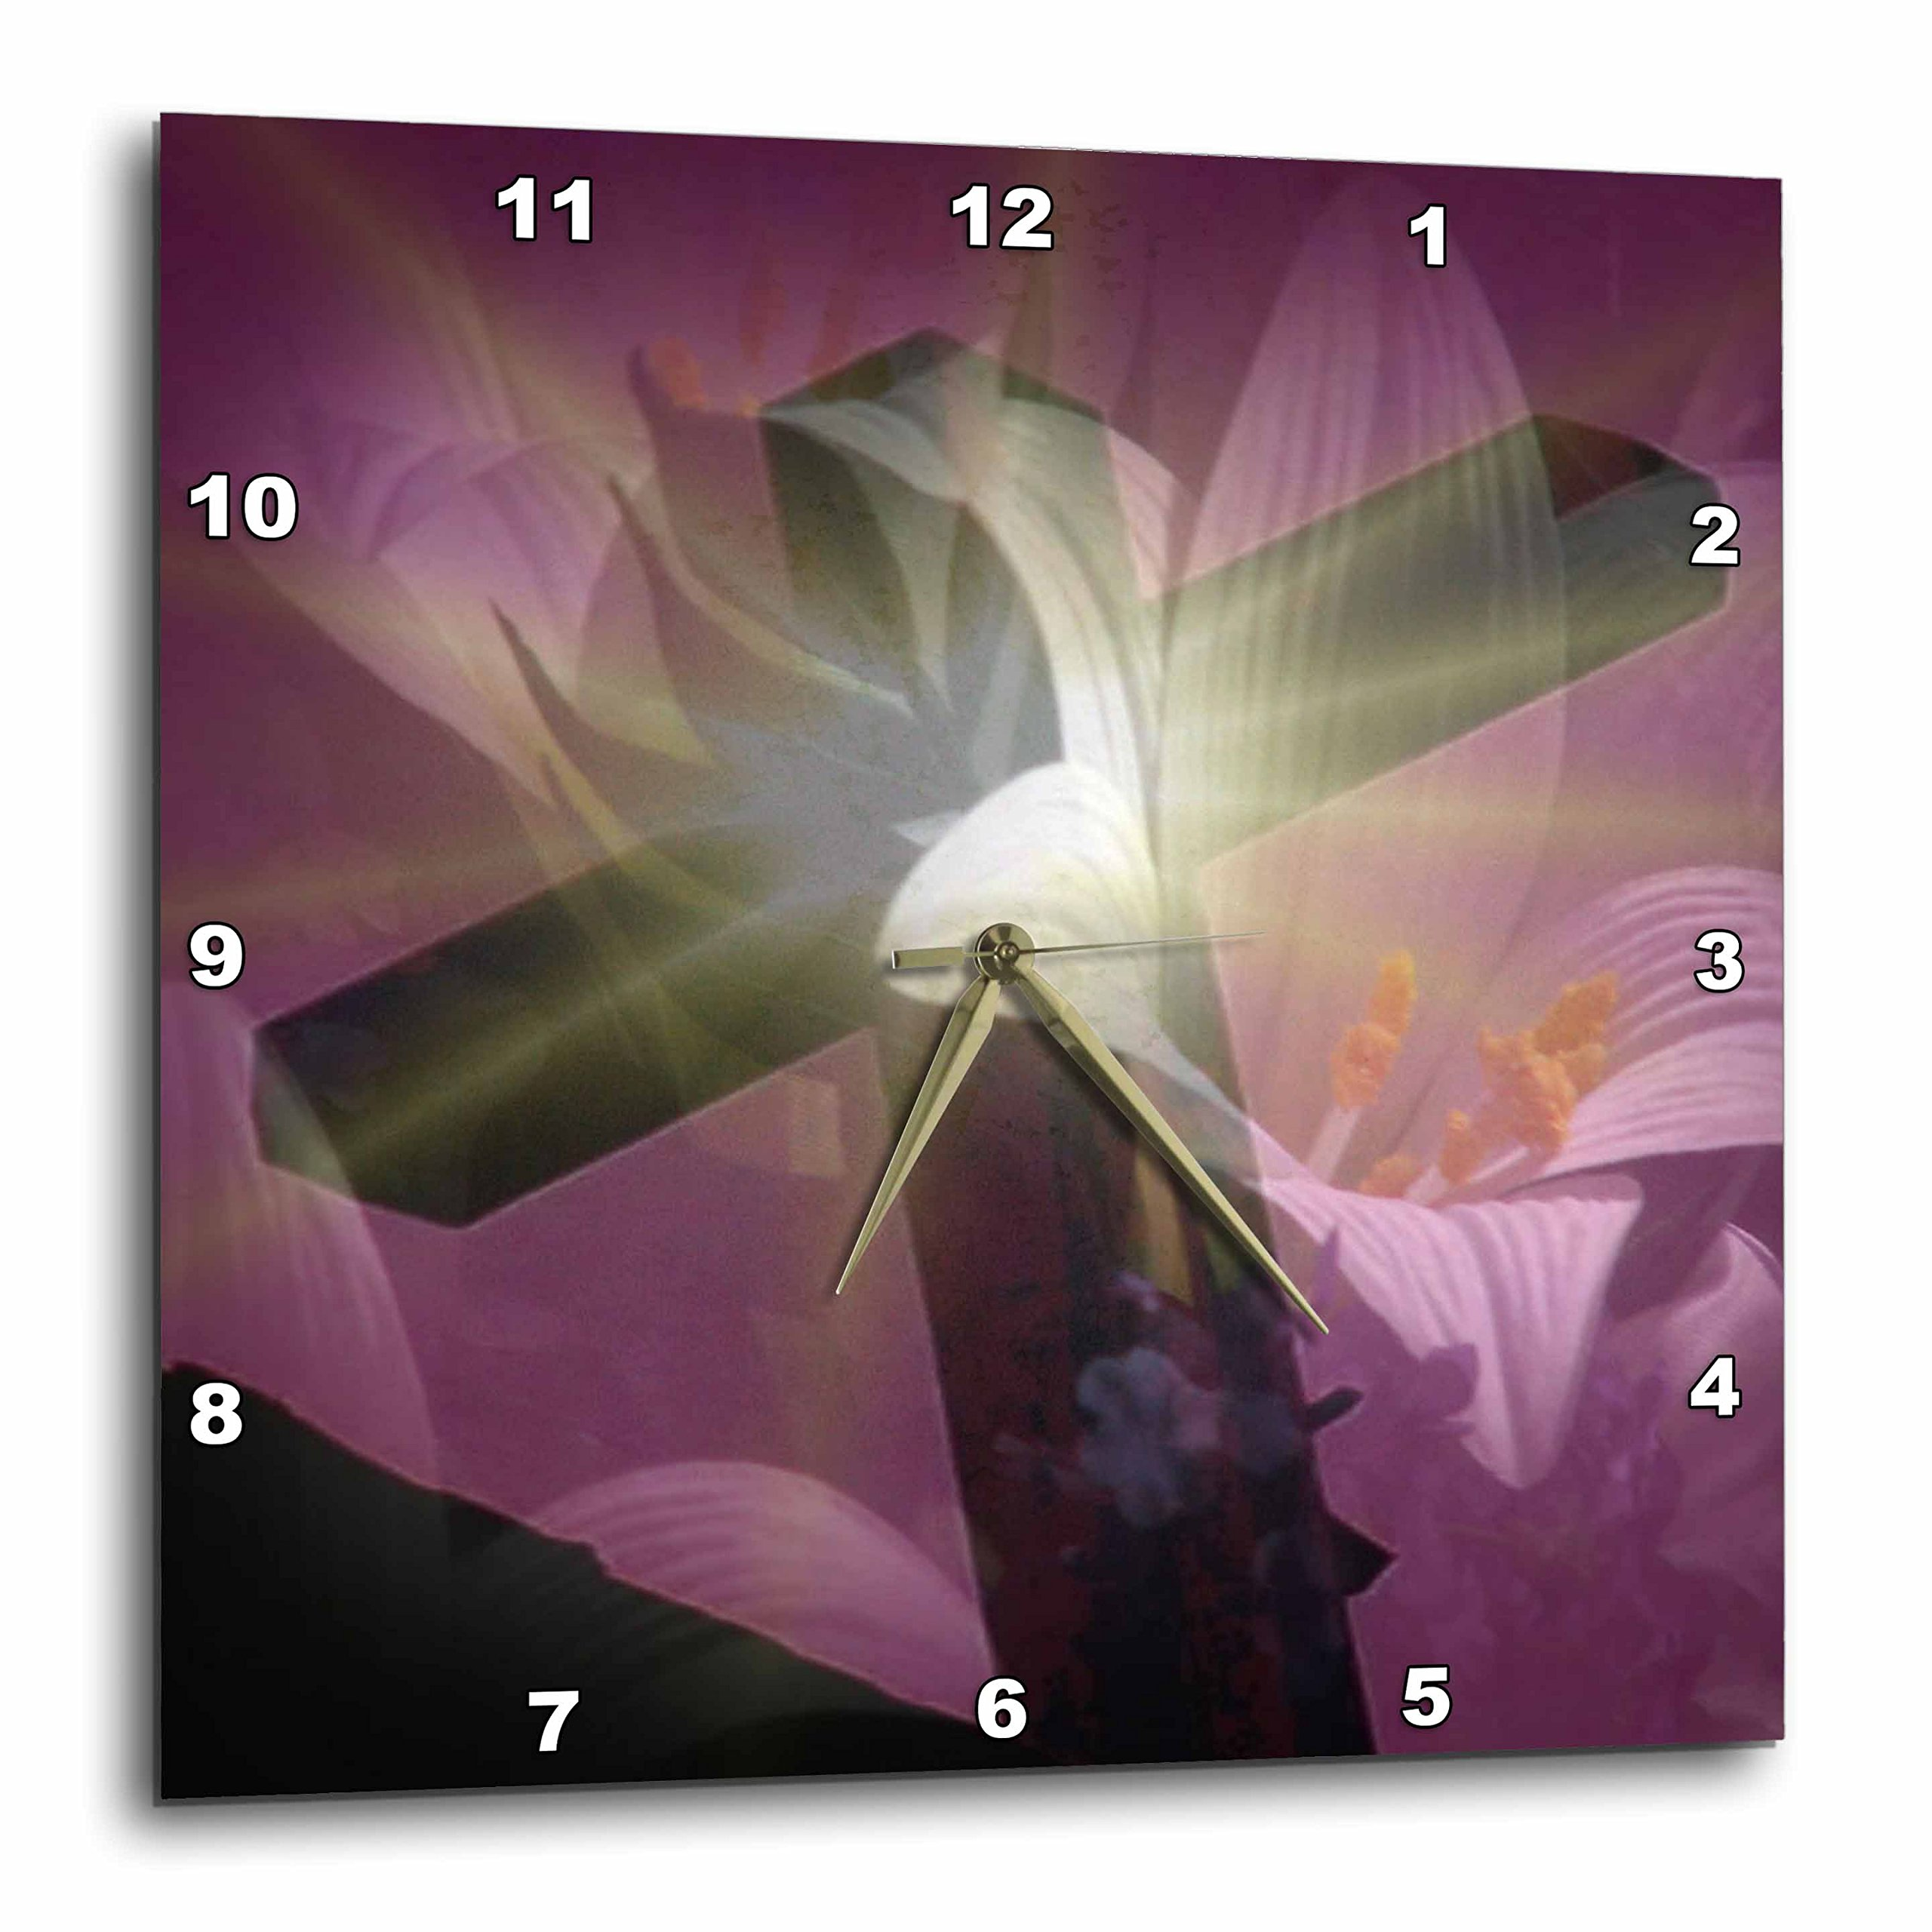 3dRose dpp_42952_2 Christian Cross and Lily Wall Clock, 13 by 13-Inch